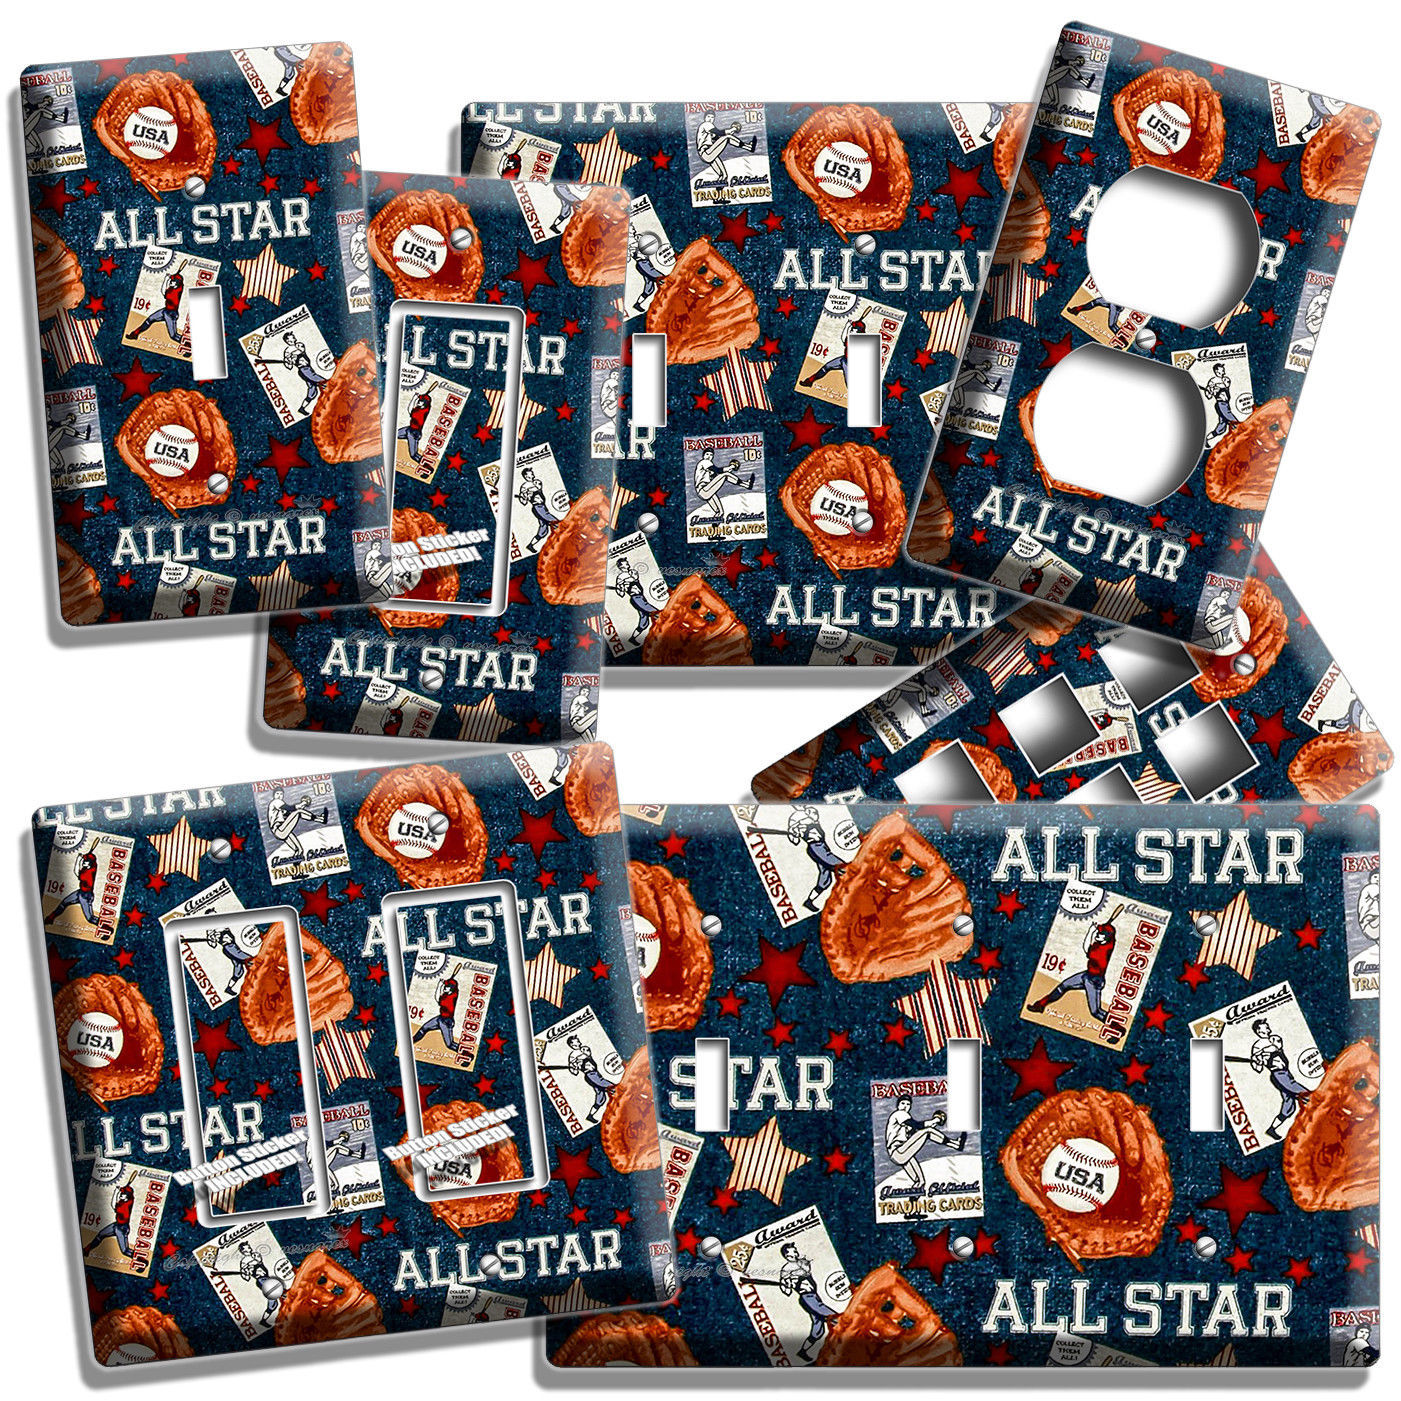 Primary image for BASEBALL VINTAGE ALL STAR LIGHT SWITCH POWER OUTLET WALL PLATE COVER ROOM DECOR